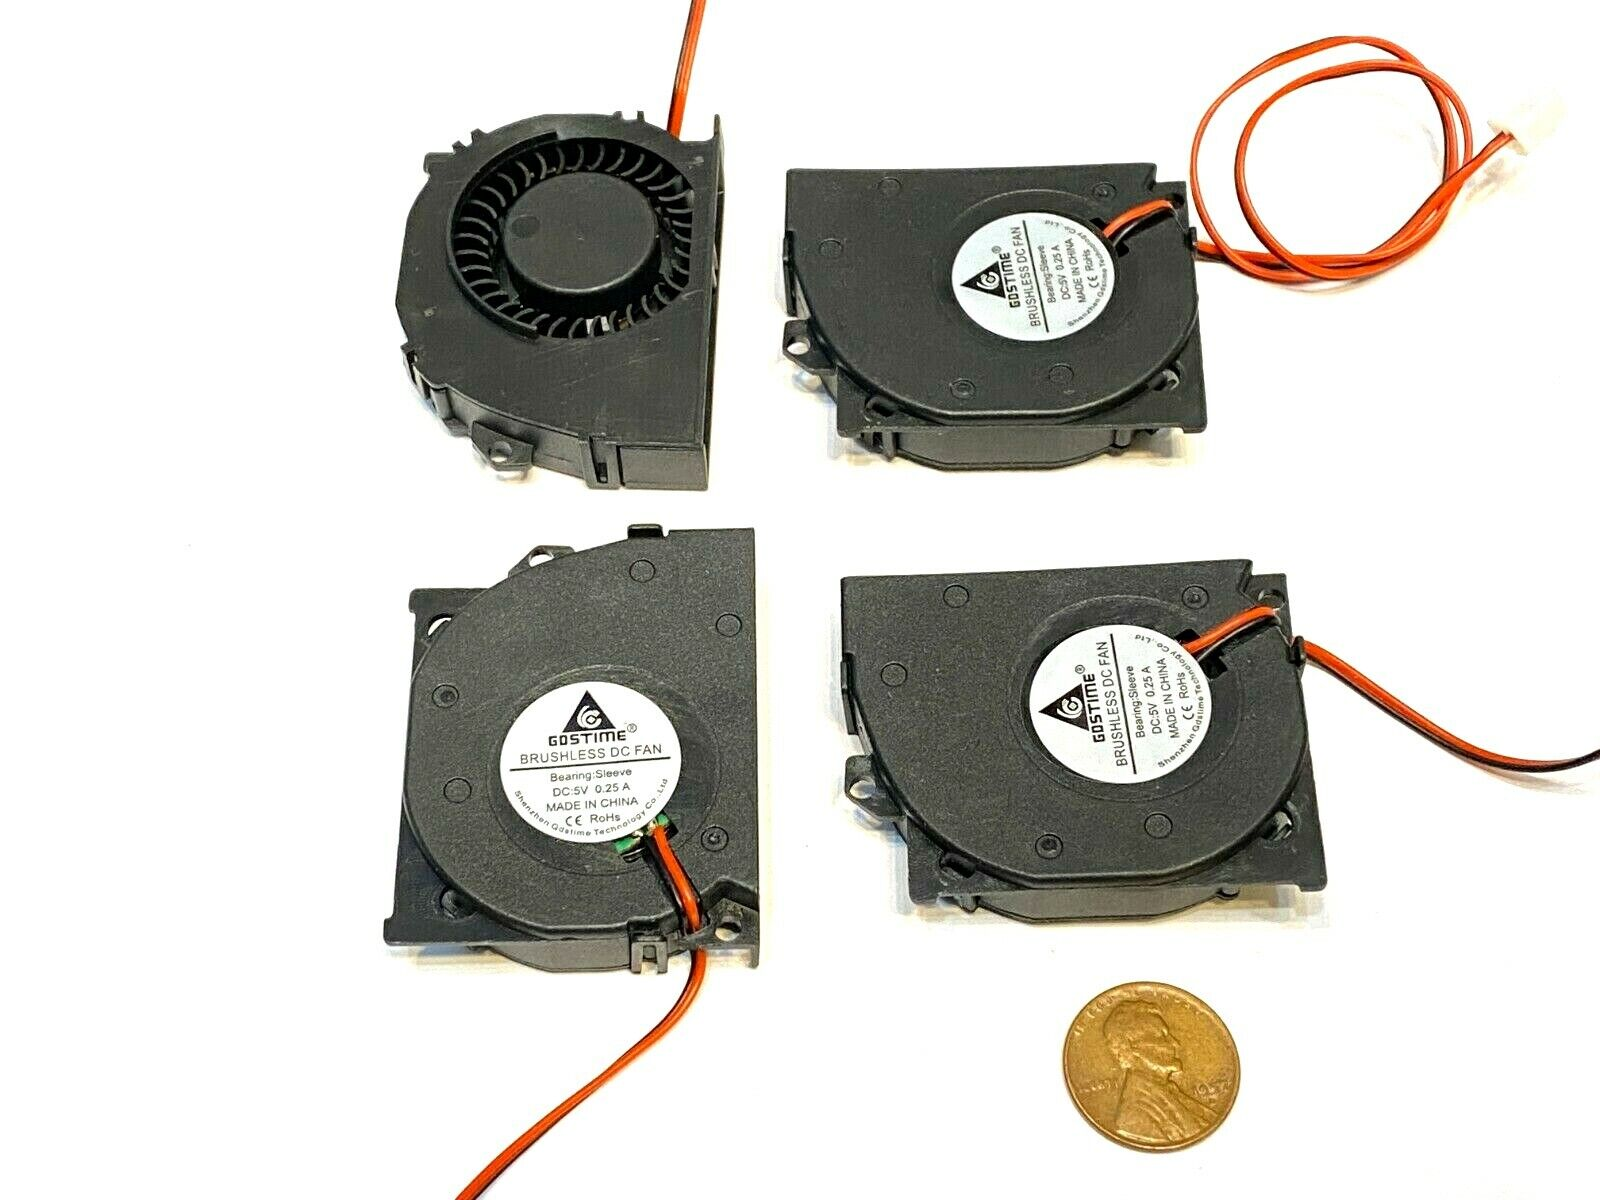 4 Pieces 5V Blower Computer 50x40x10mm 5cm 4cm 10mm Cooling Exhaust Fan 2pin C46